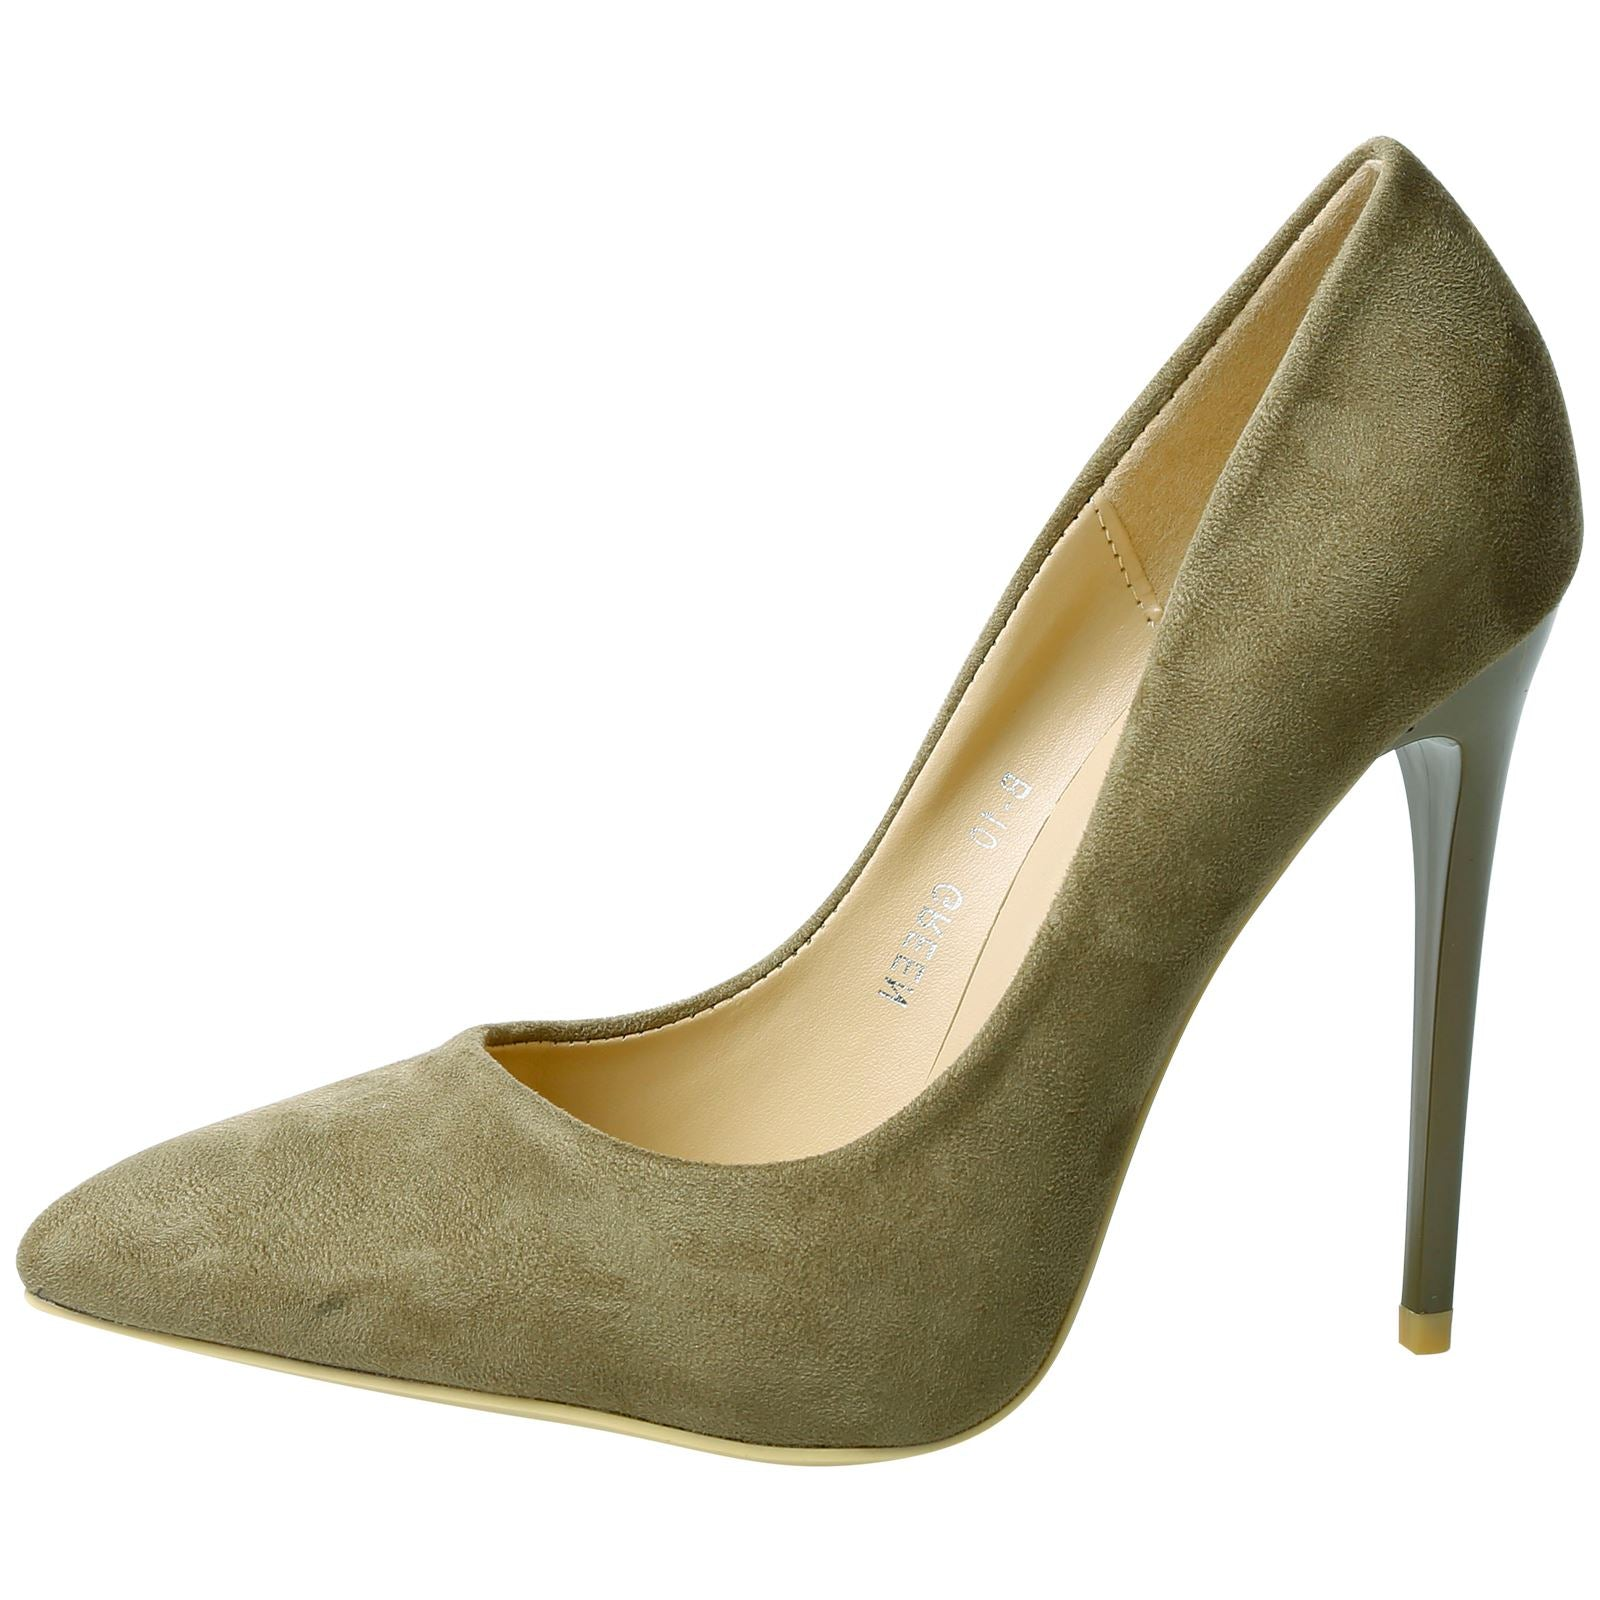 Danita Stiletto Heel Court Shoes in Olive Green Faux Suede